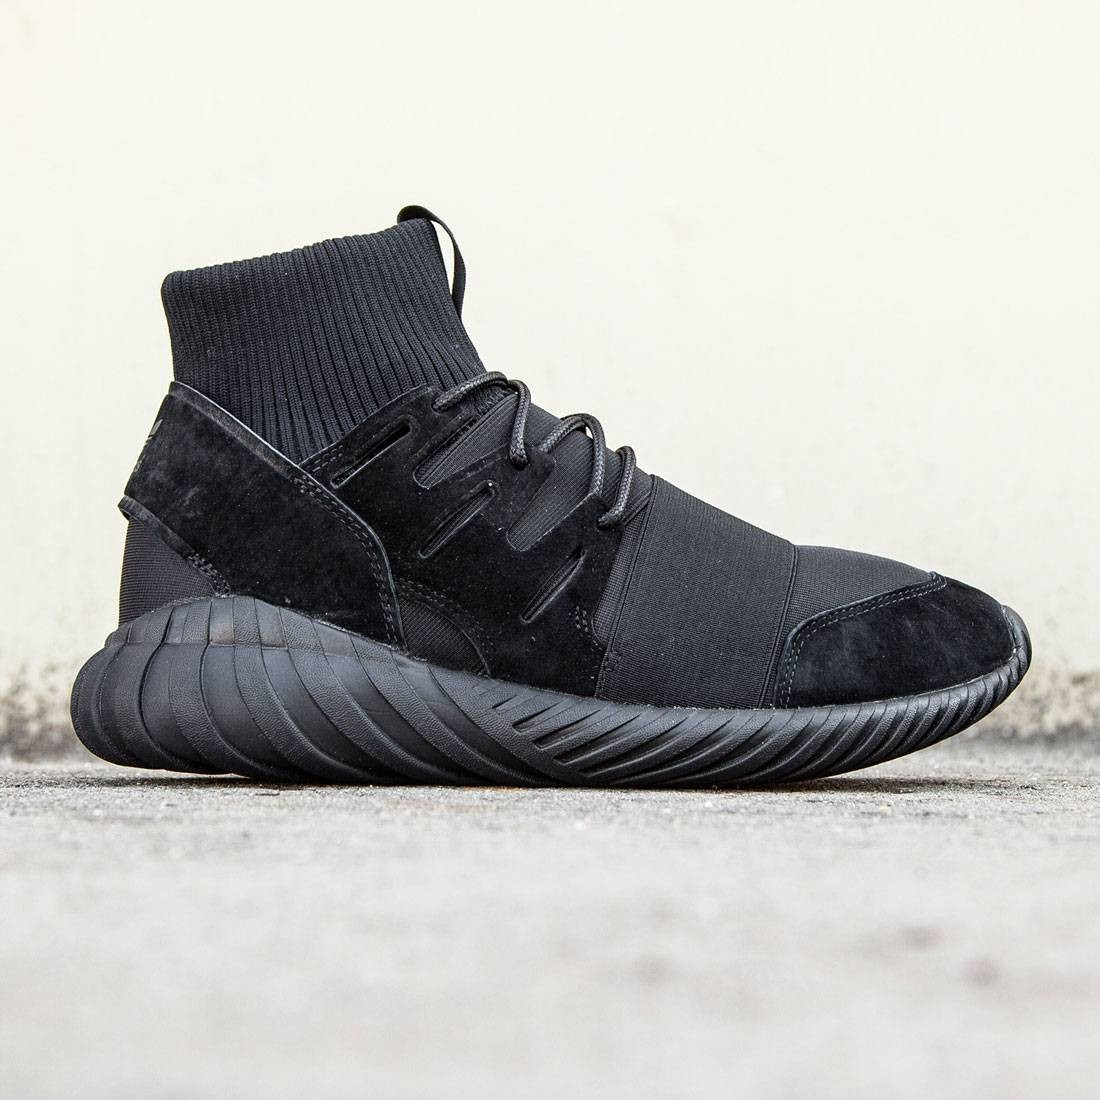 96bda735f390 Adidas Men Tubular Doom - Triple Black black core black